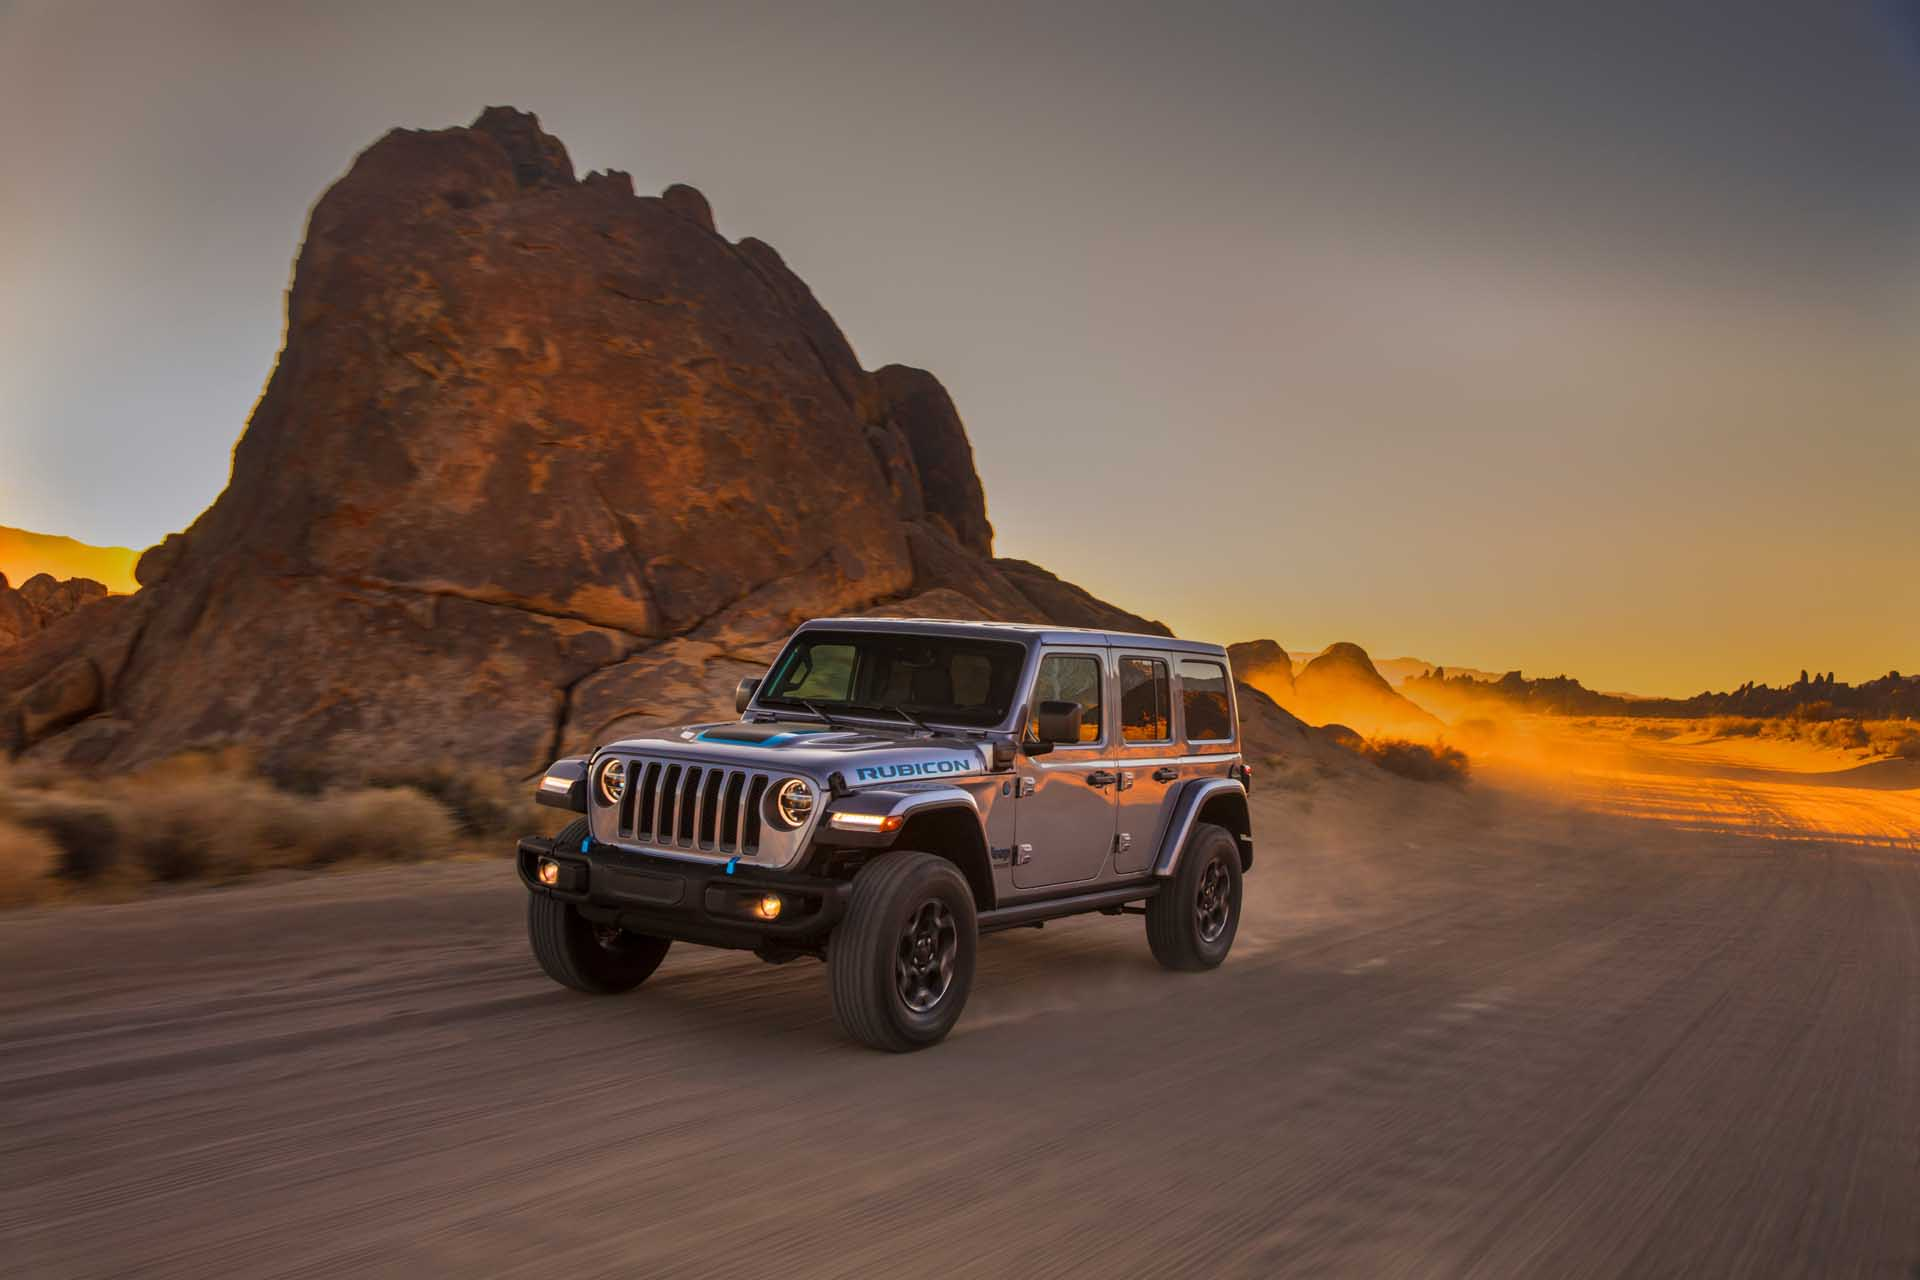 For Wrangler 4xe, Jeep plans to build solar-powered chargers on off-road trails